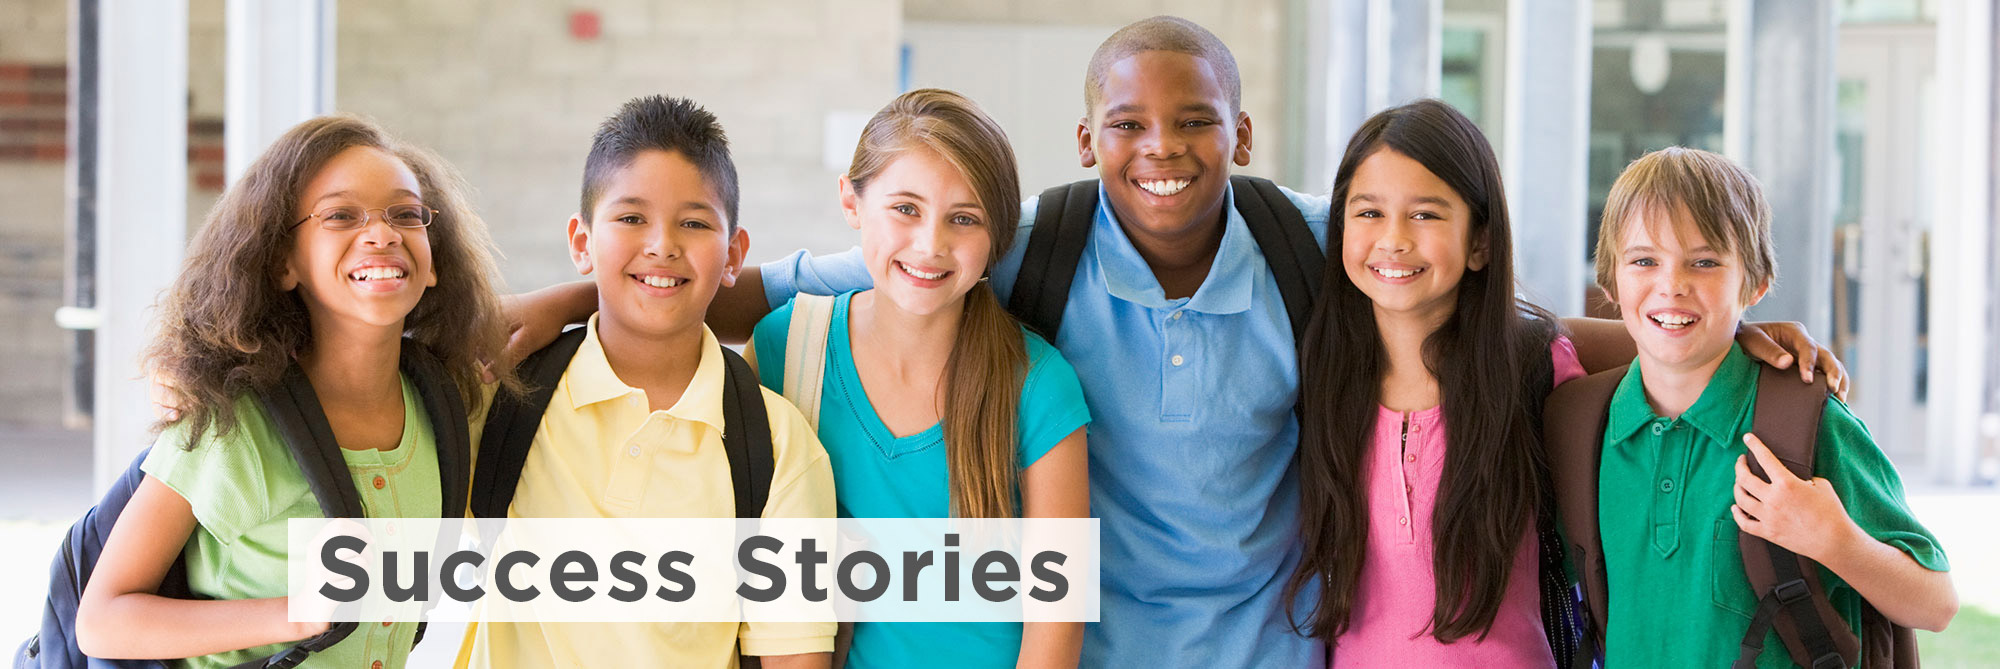 fish-for-schools-success-stories